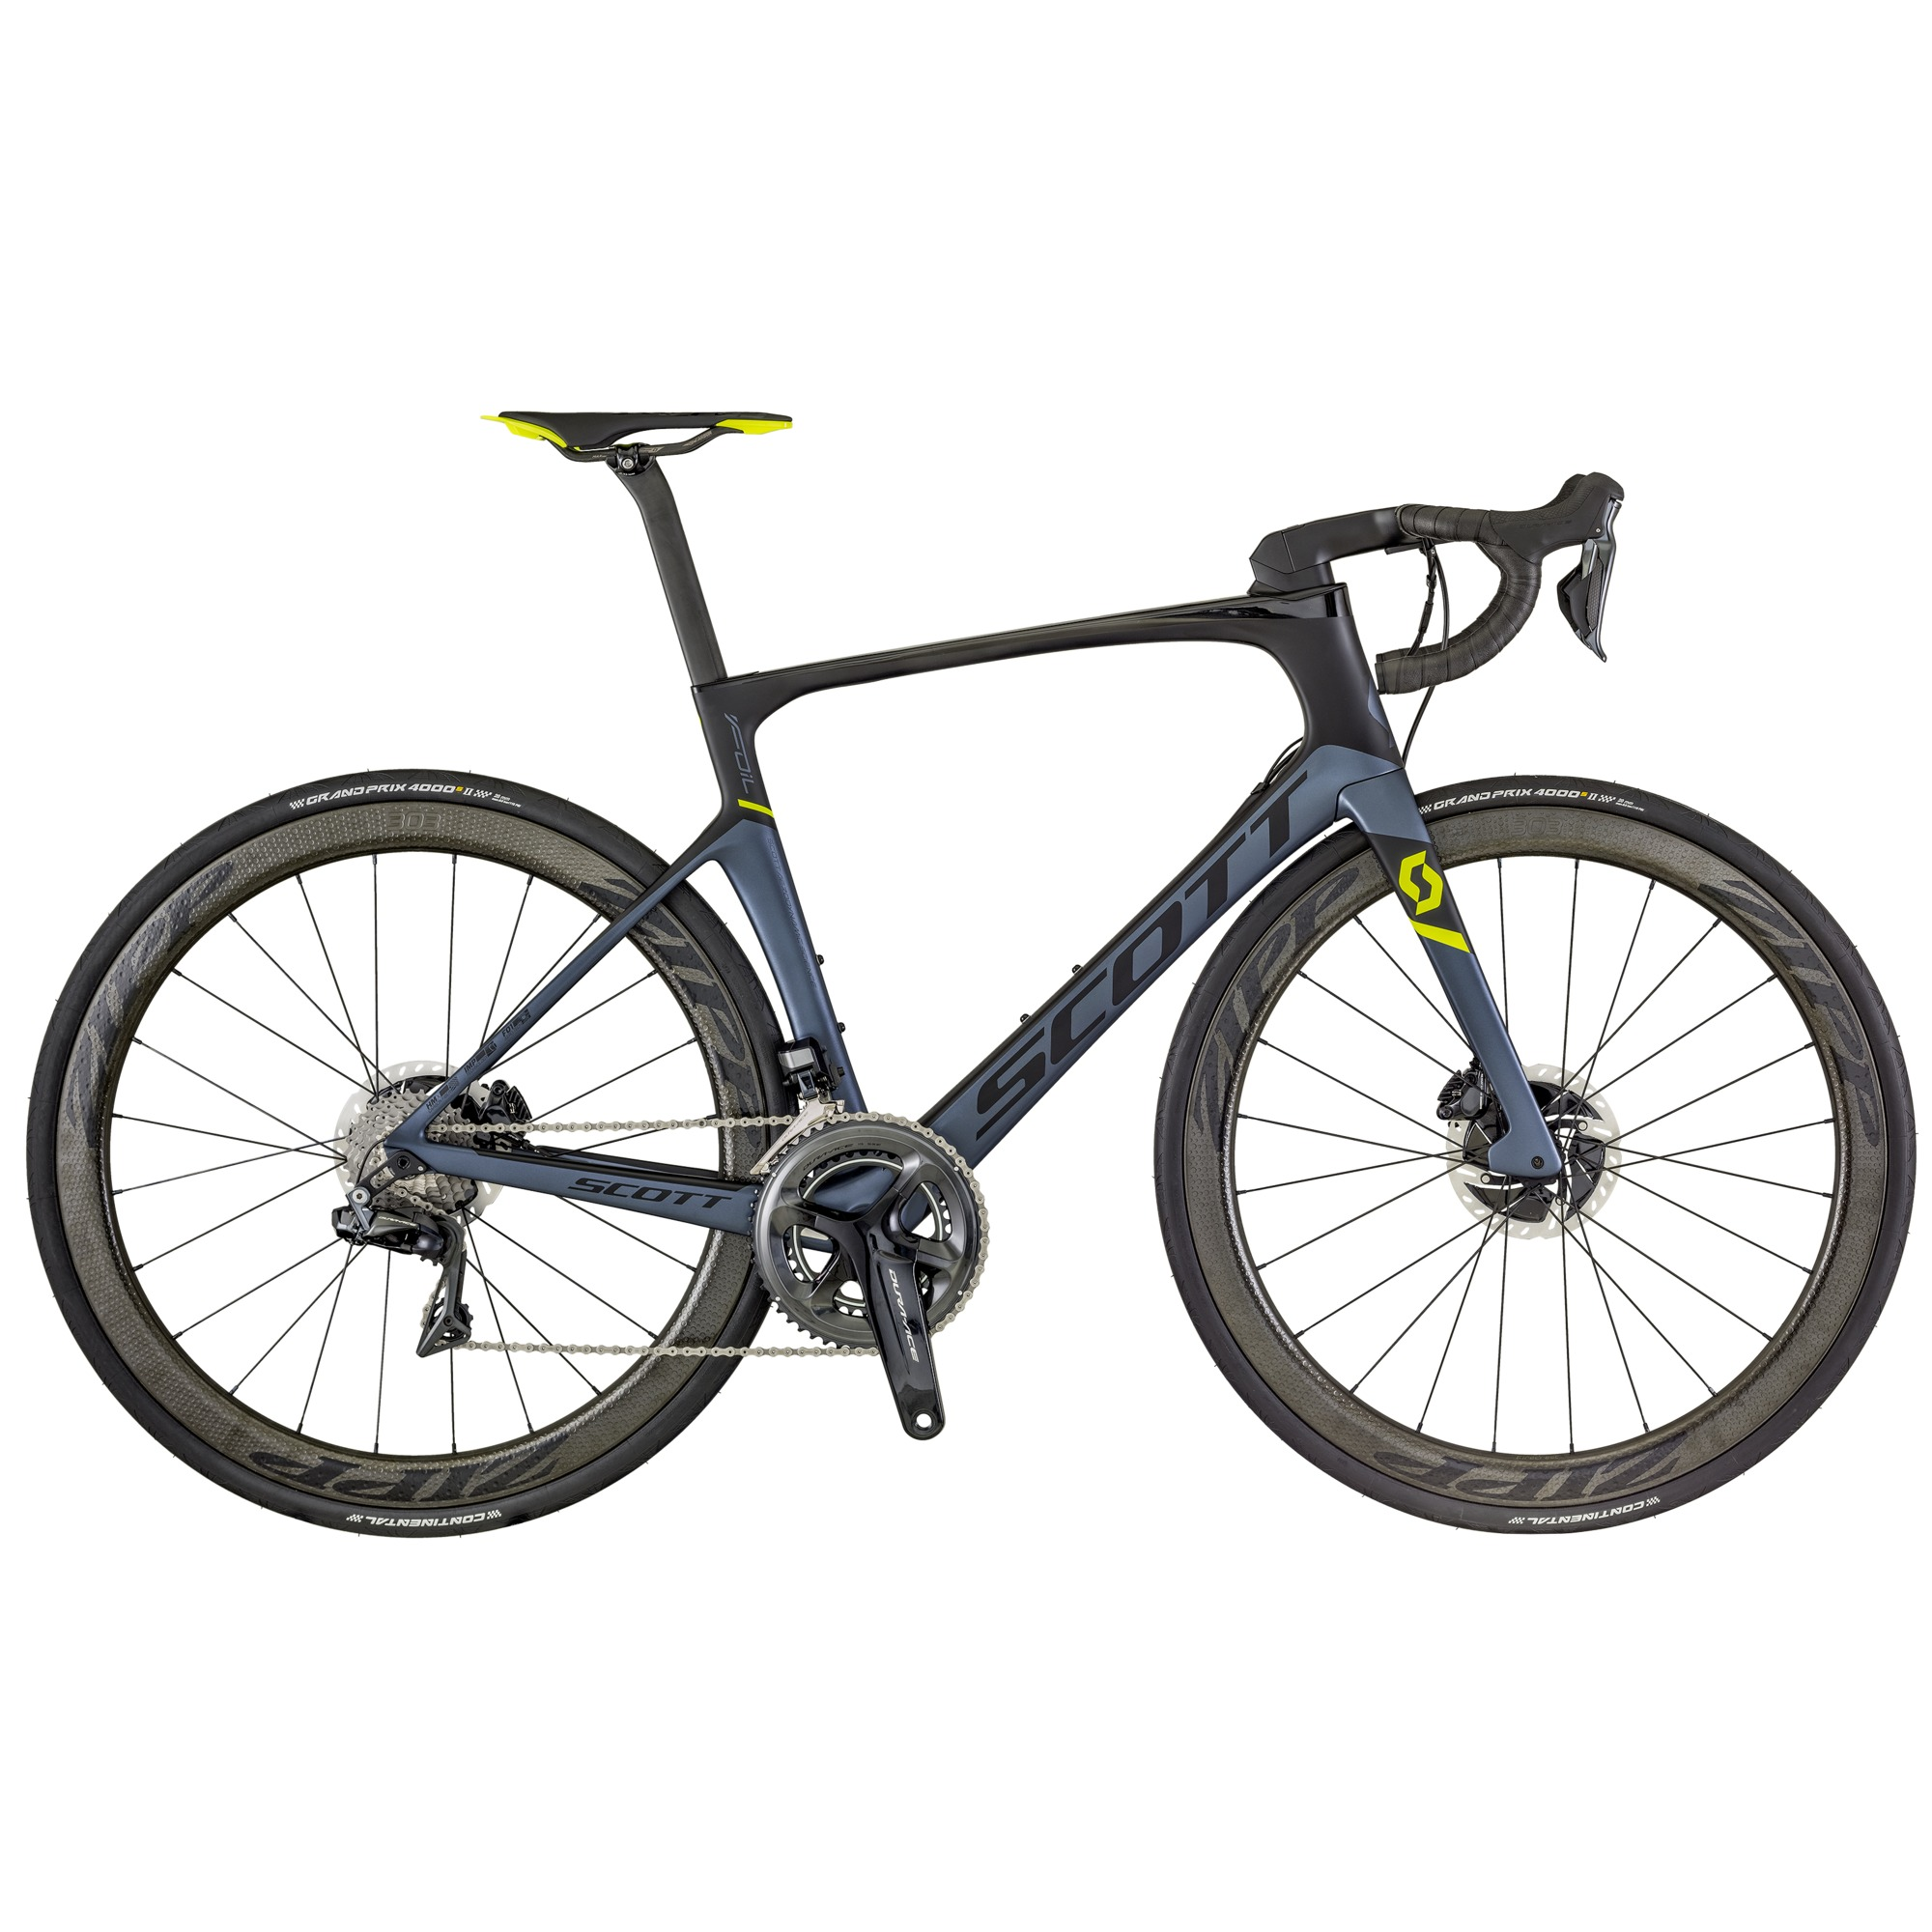 SCOTT Foil Premium Disc Bike 2XL61 - Zweirad Homann